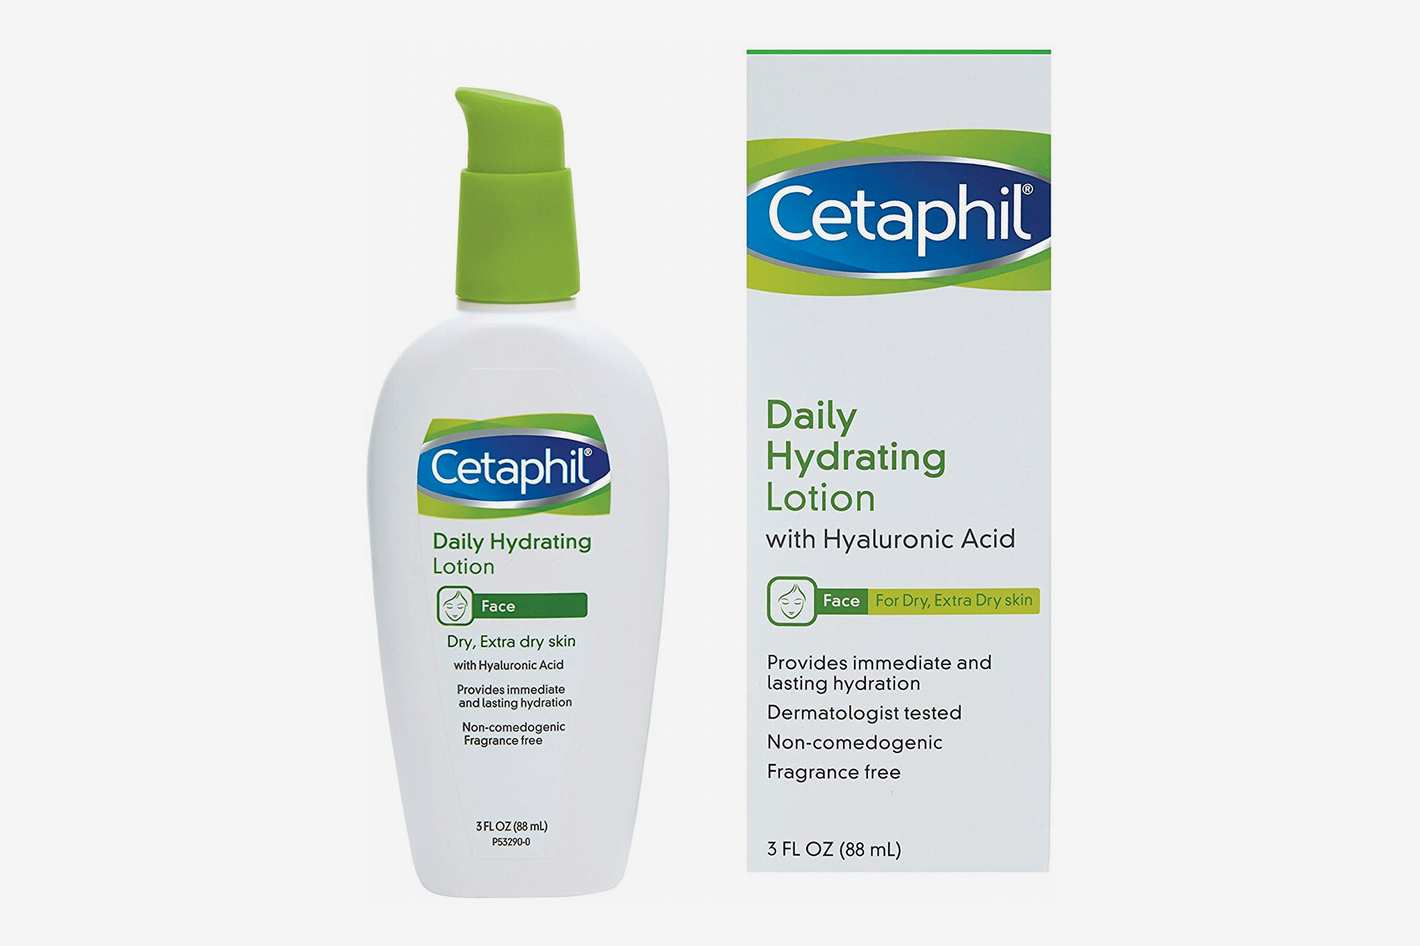 Cetaphil Daily Hydrating Lotion with Hyaluronic Acid